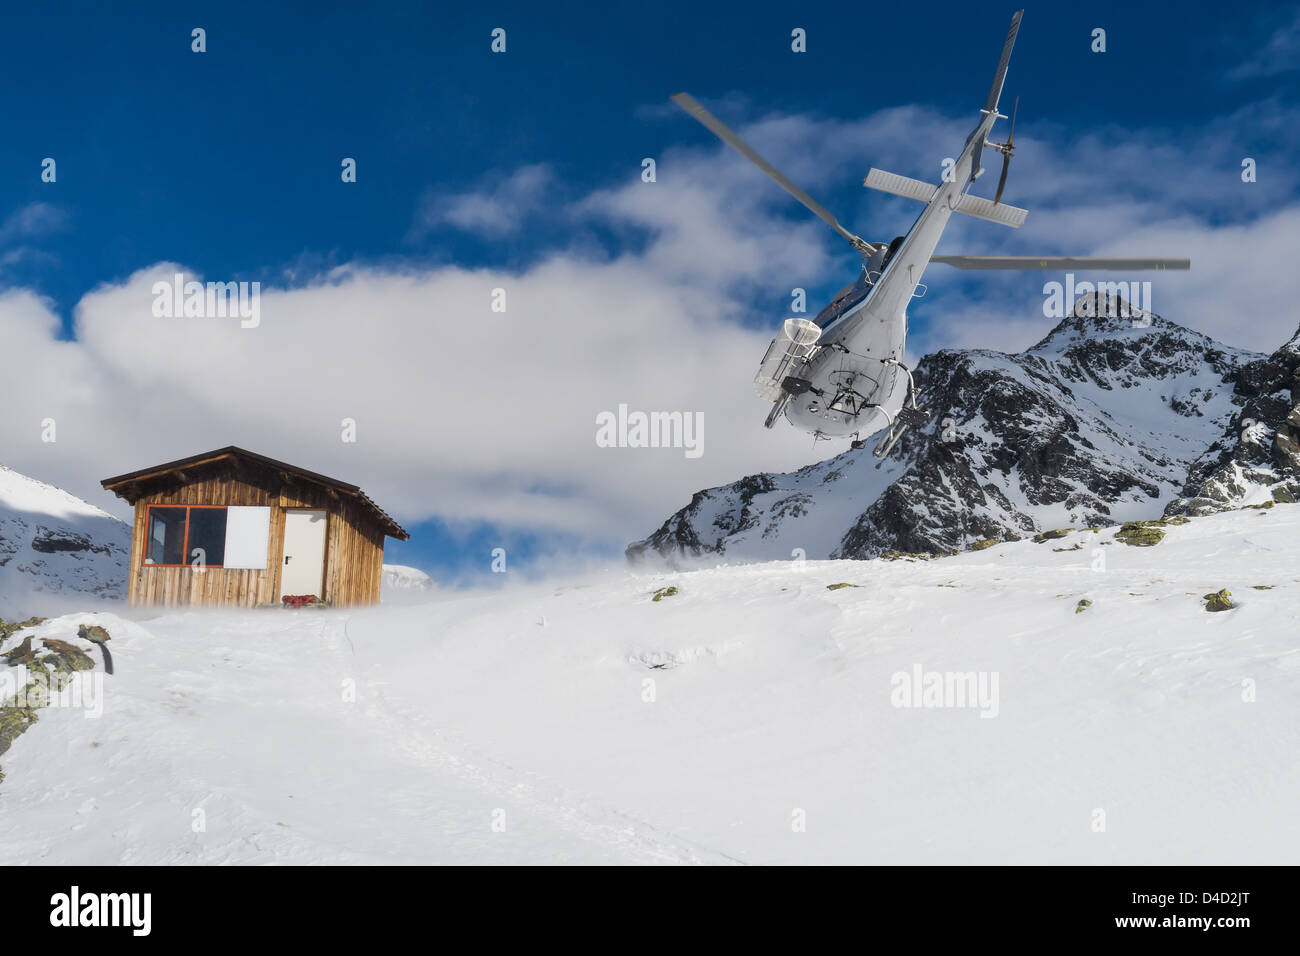 Helicopter mountain rescue service in winter, on italian alps - Stock Image